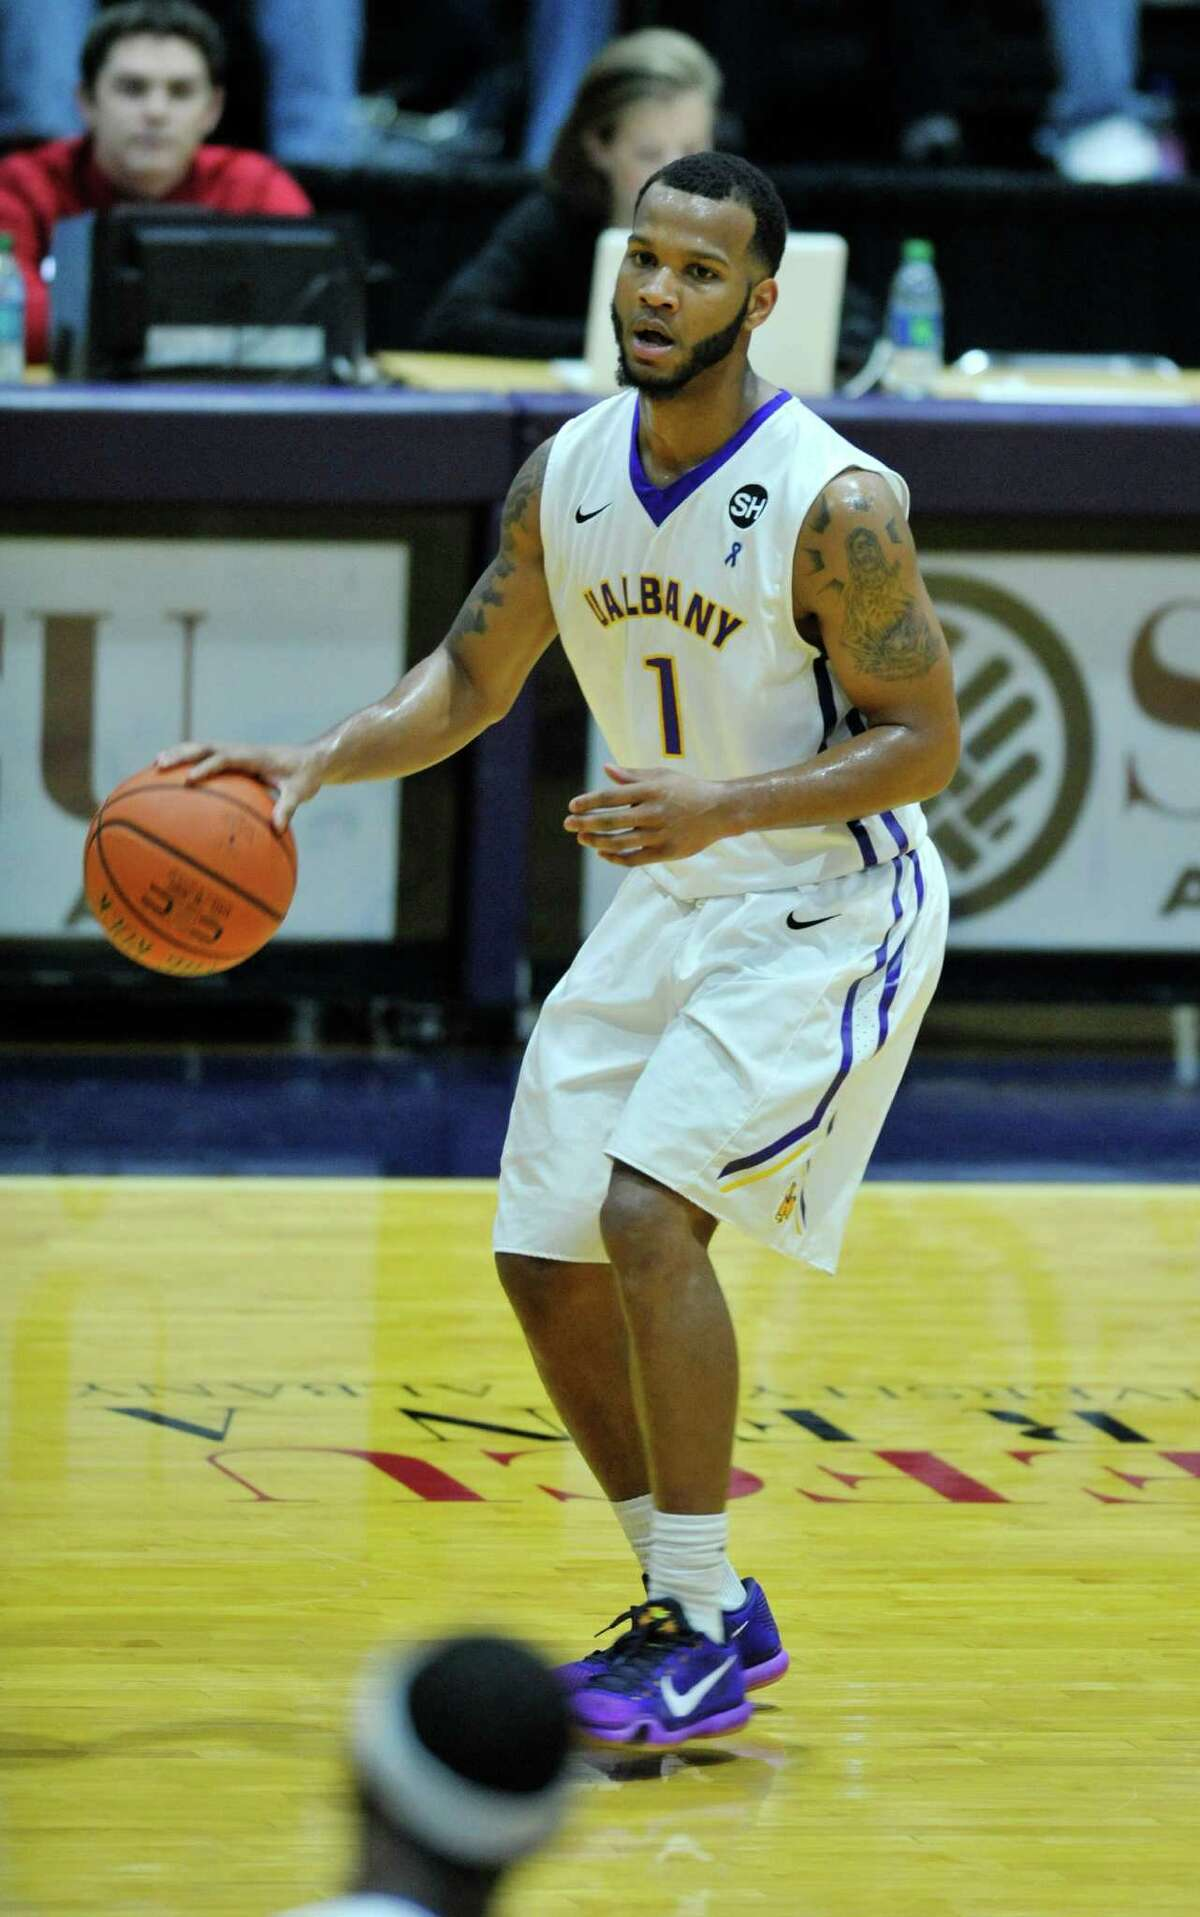 Ray Sanders of UAlbany brings the ball up the court against Yale during their game on Sunday, Nov. 29, 2015, in Albany, N.Y. (Paul Buckowski / Times Union)